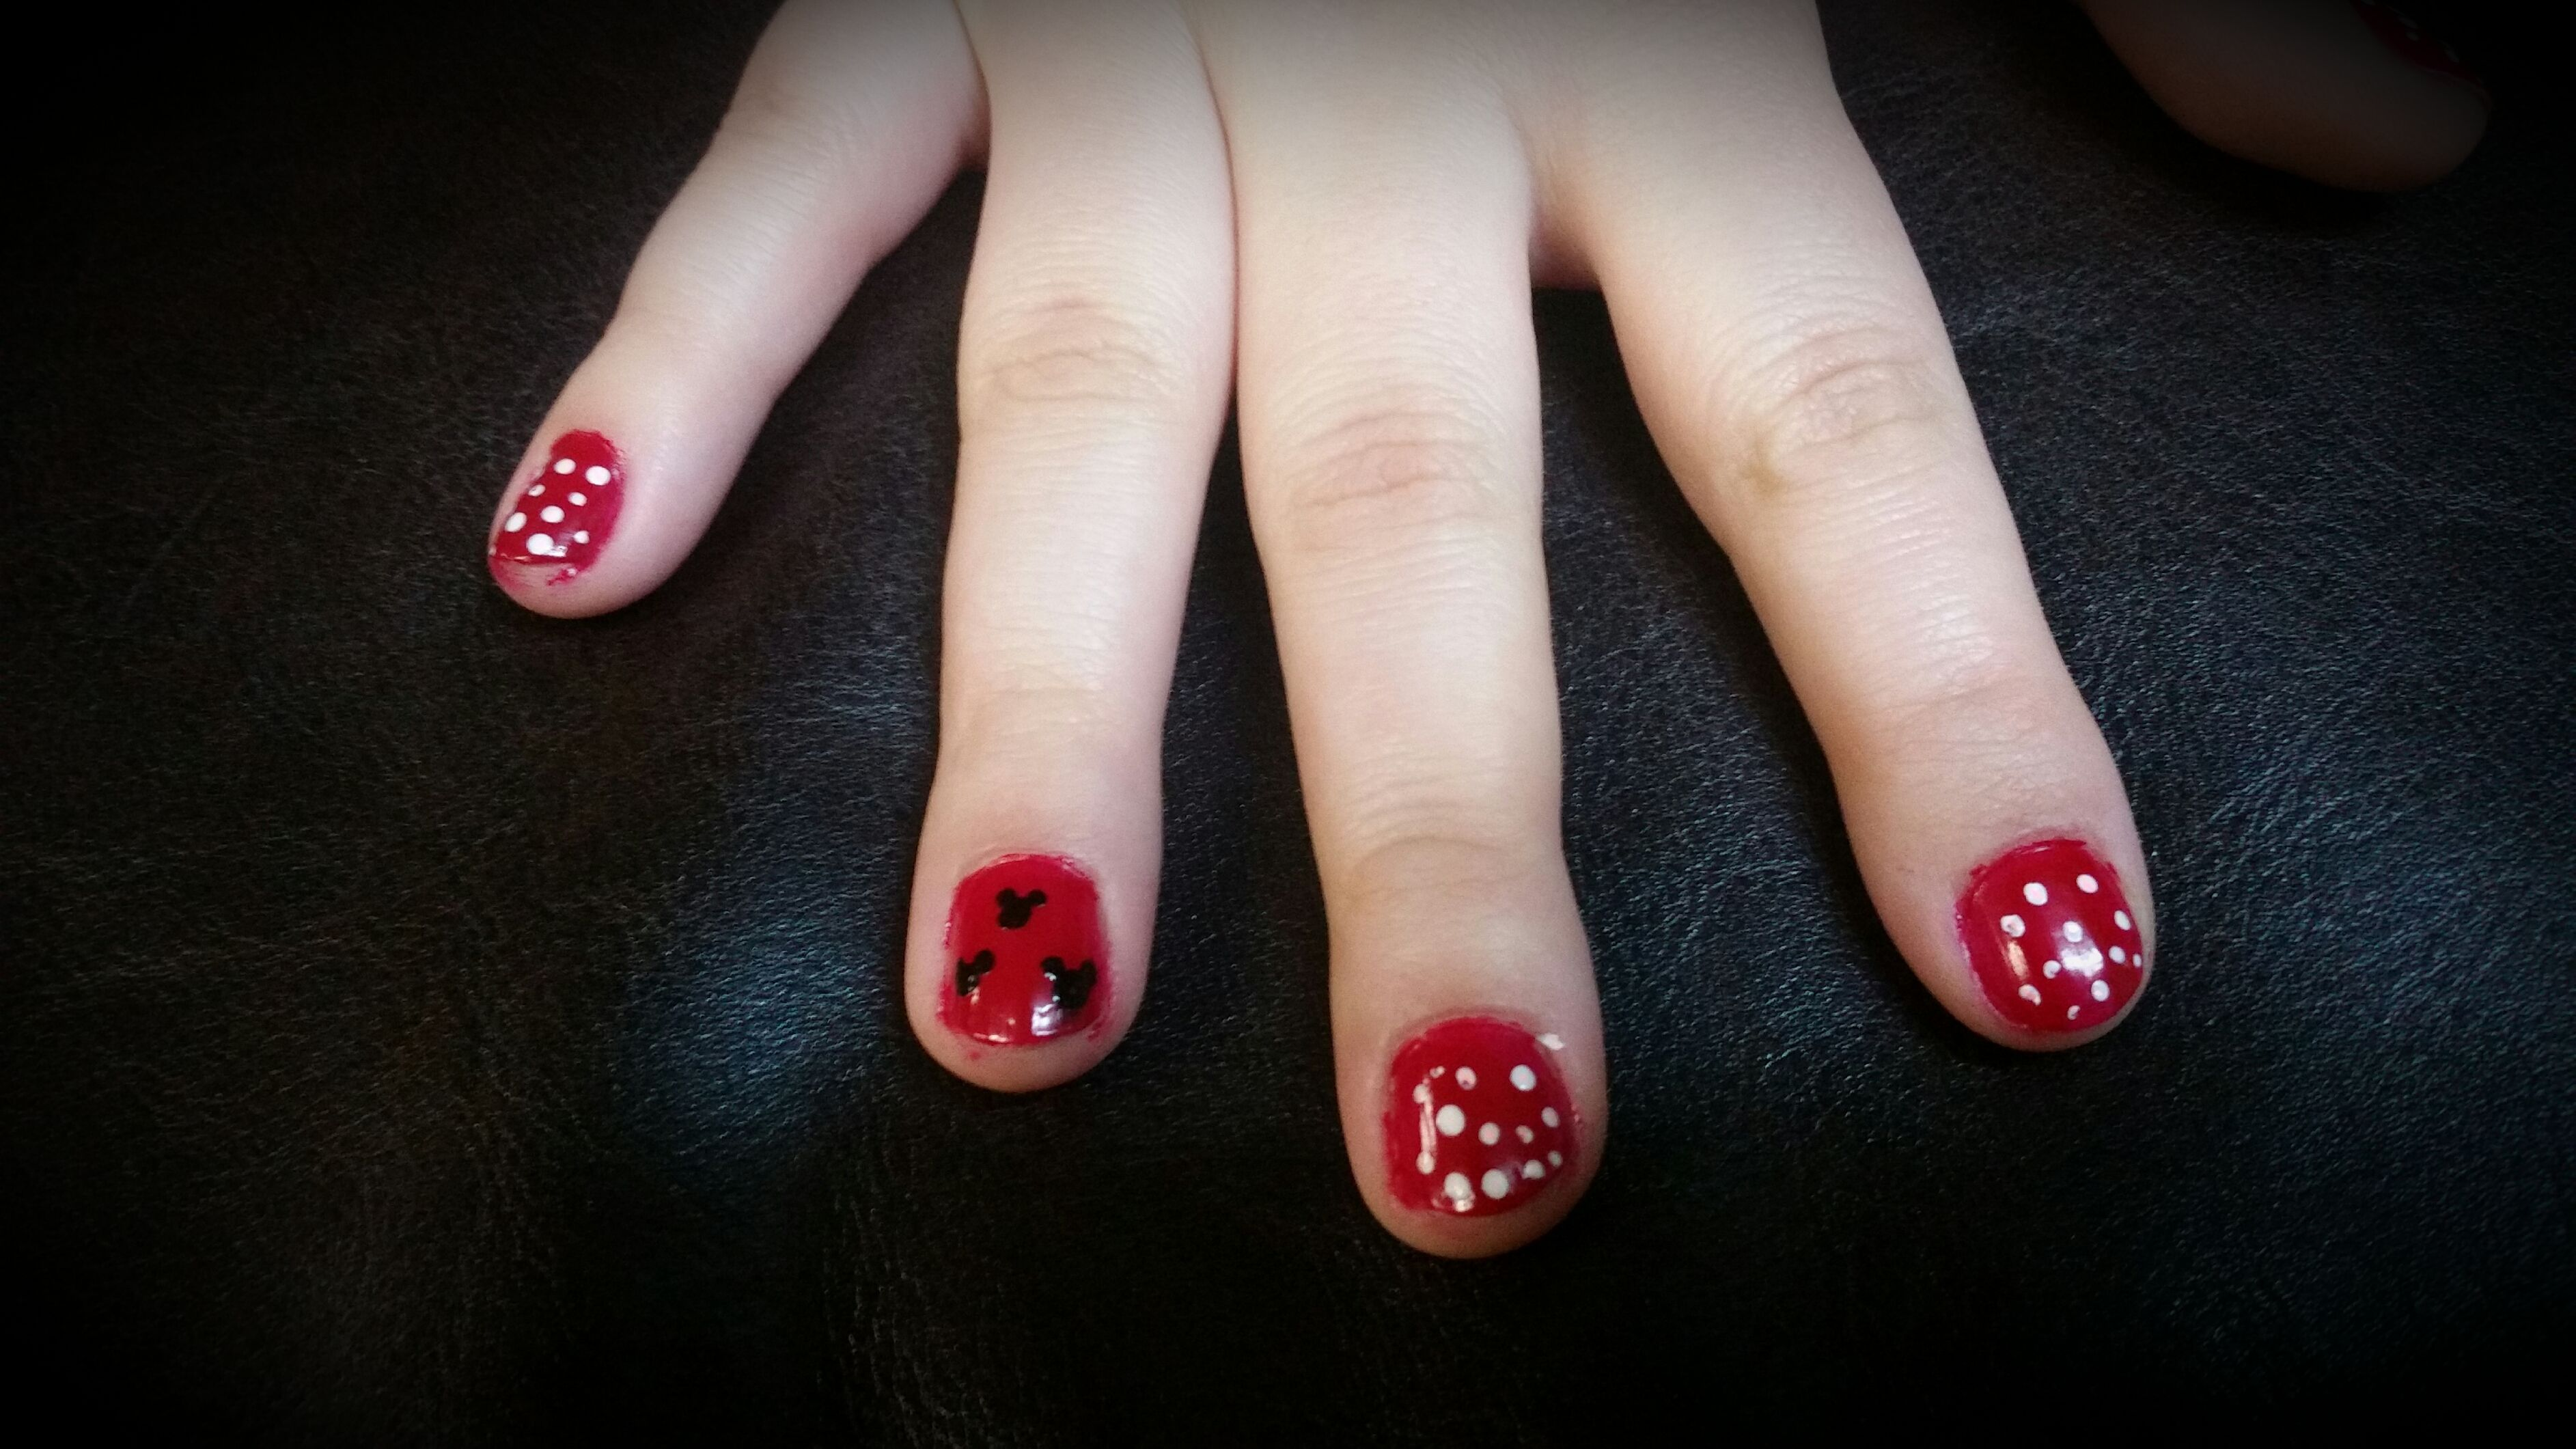 Inspired by Minnie and Mickey, this design is simply a red background with polka dots and Mickey heads done by a bobby pin